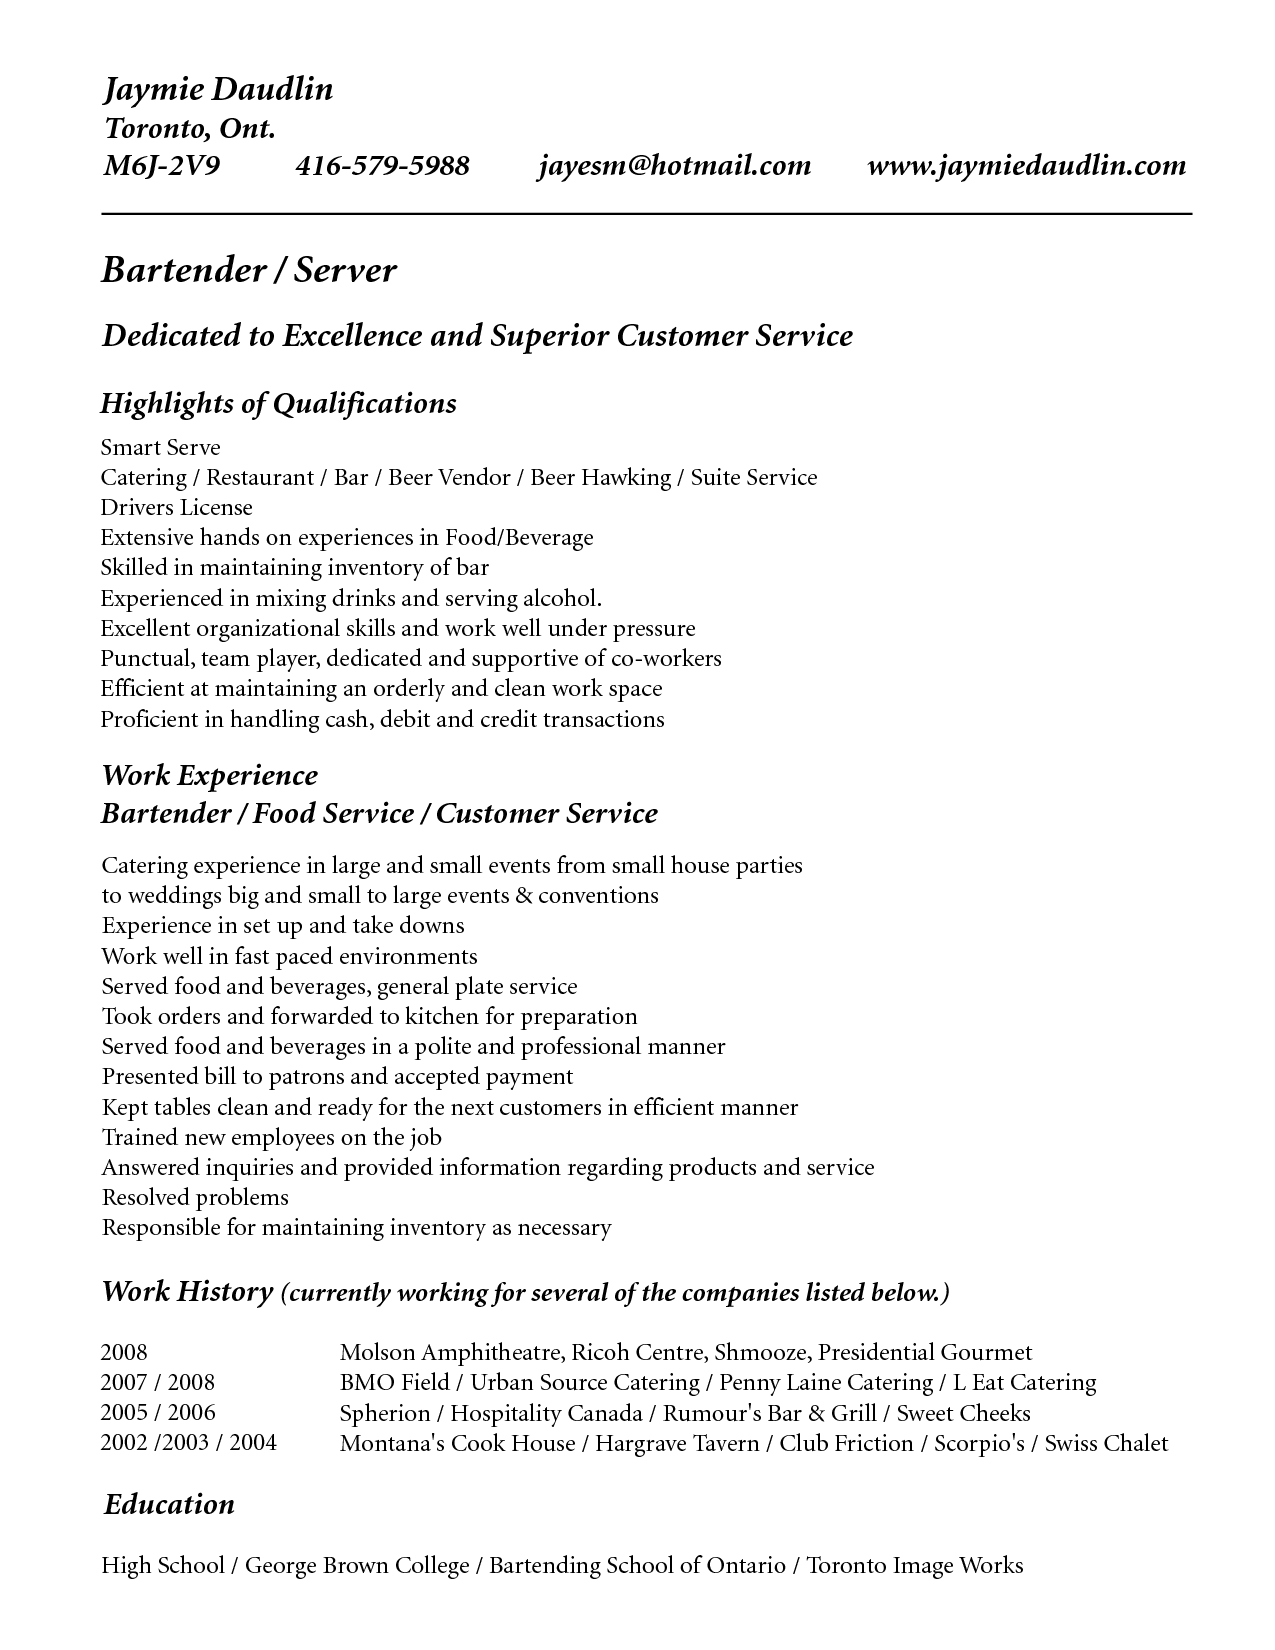 Resume Template For Bartender No Experience - http://www ...